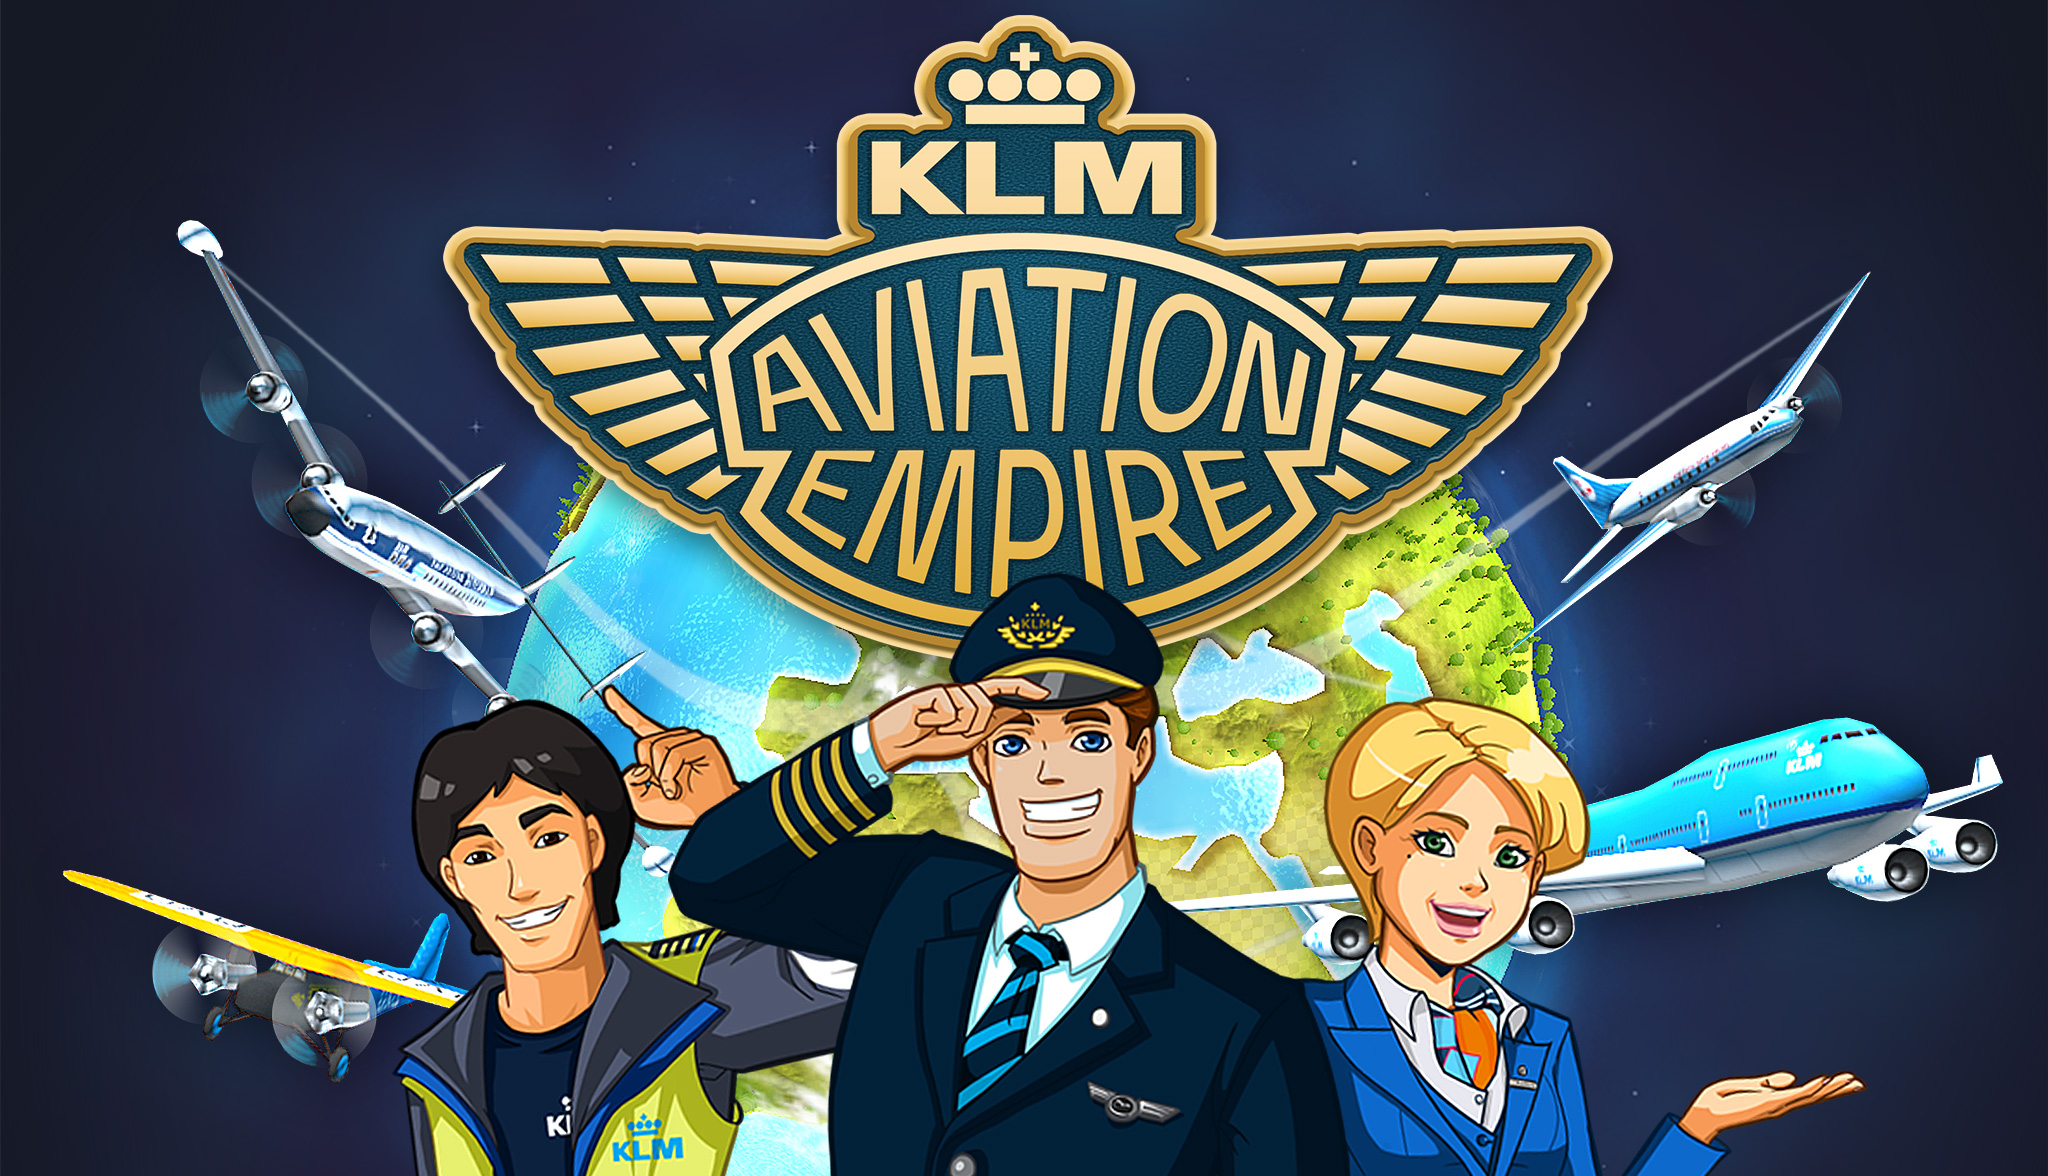 KLM Aviation Empire